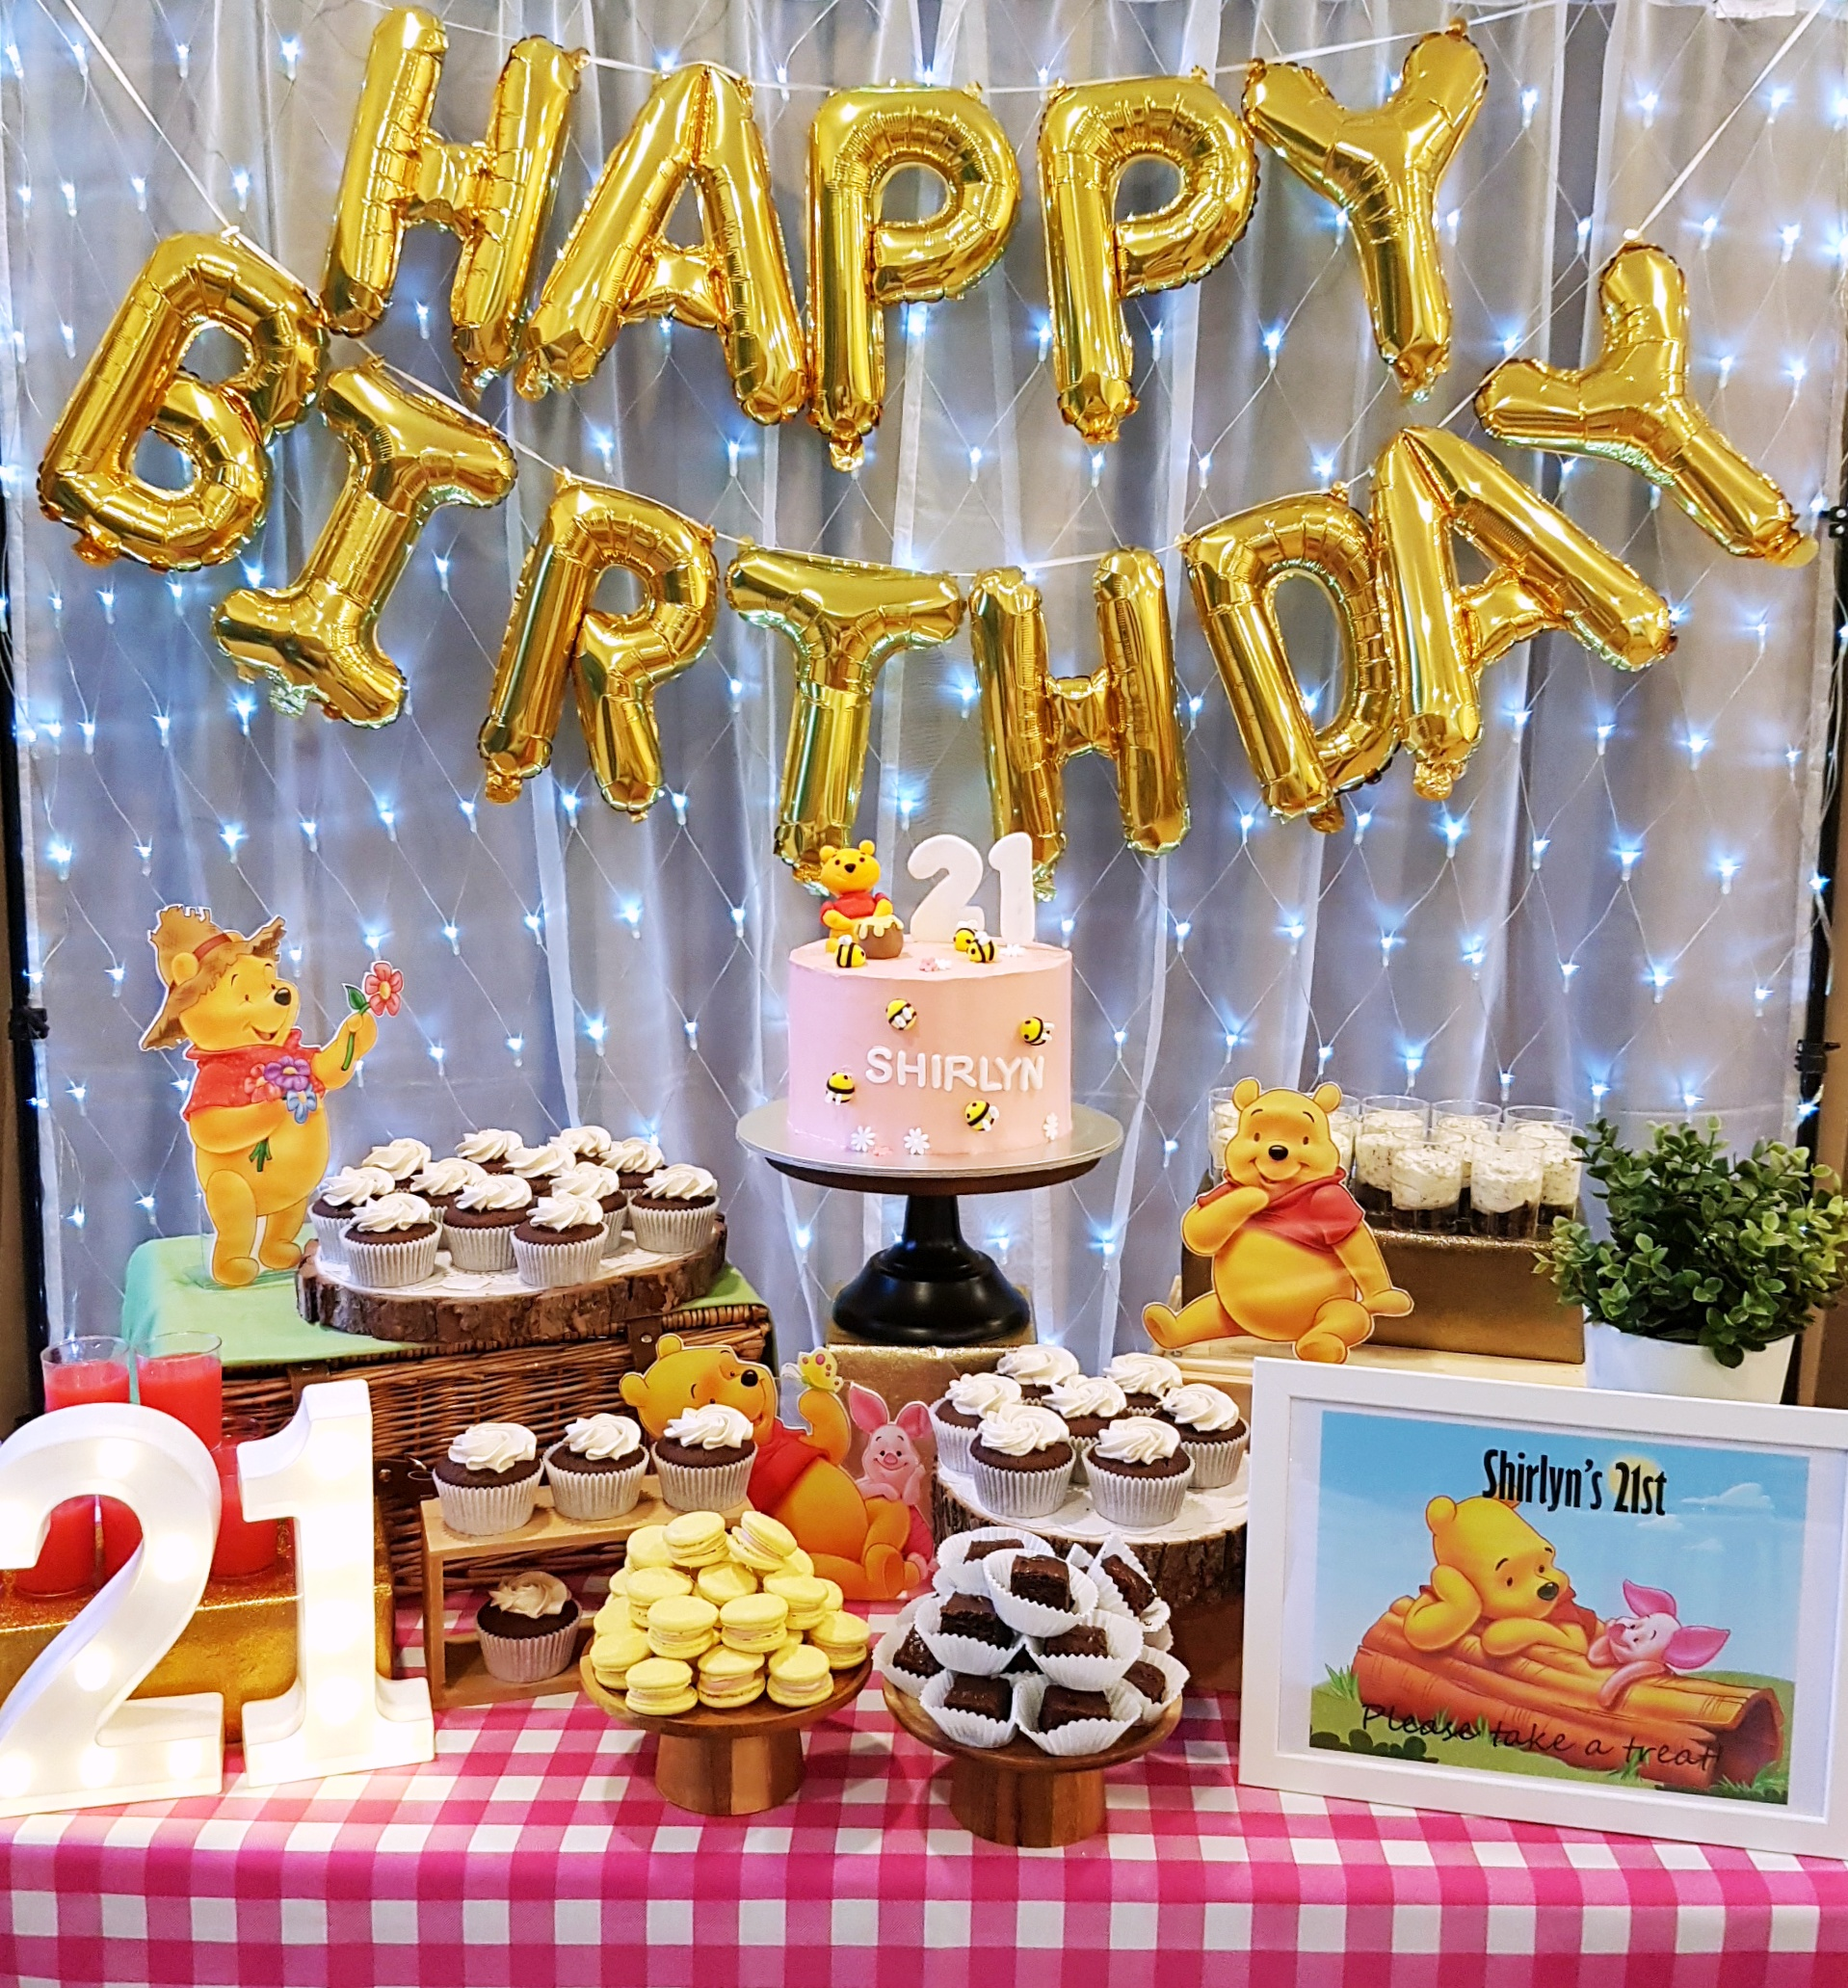 Pooh Picnic Dessert Table by The Baking Experiment